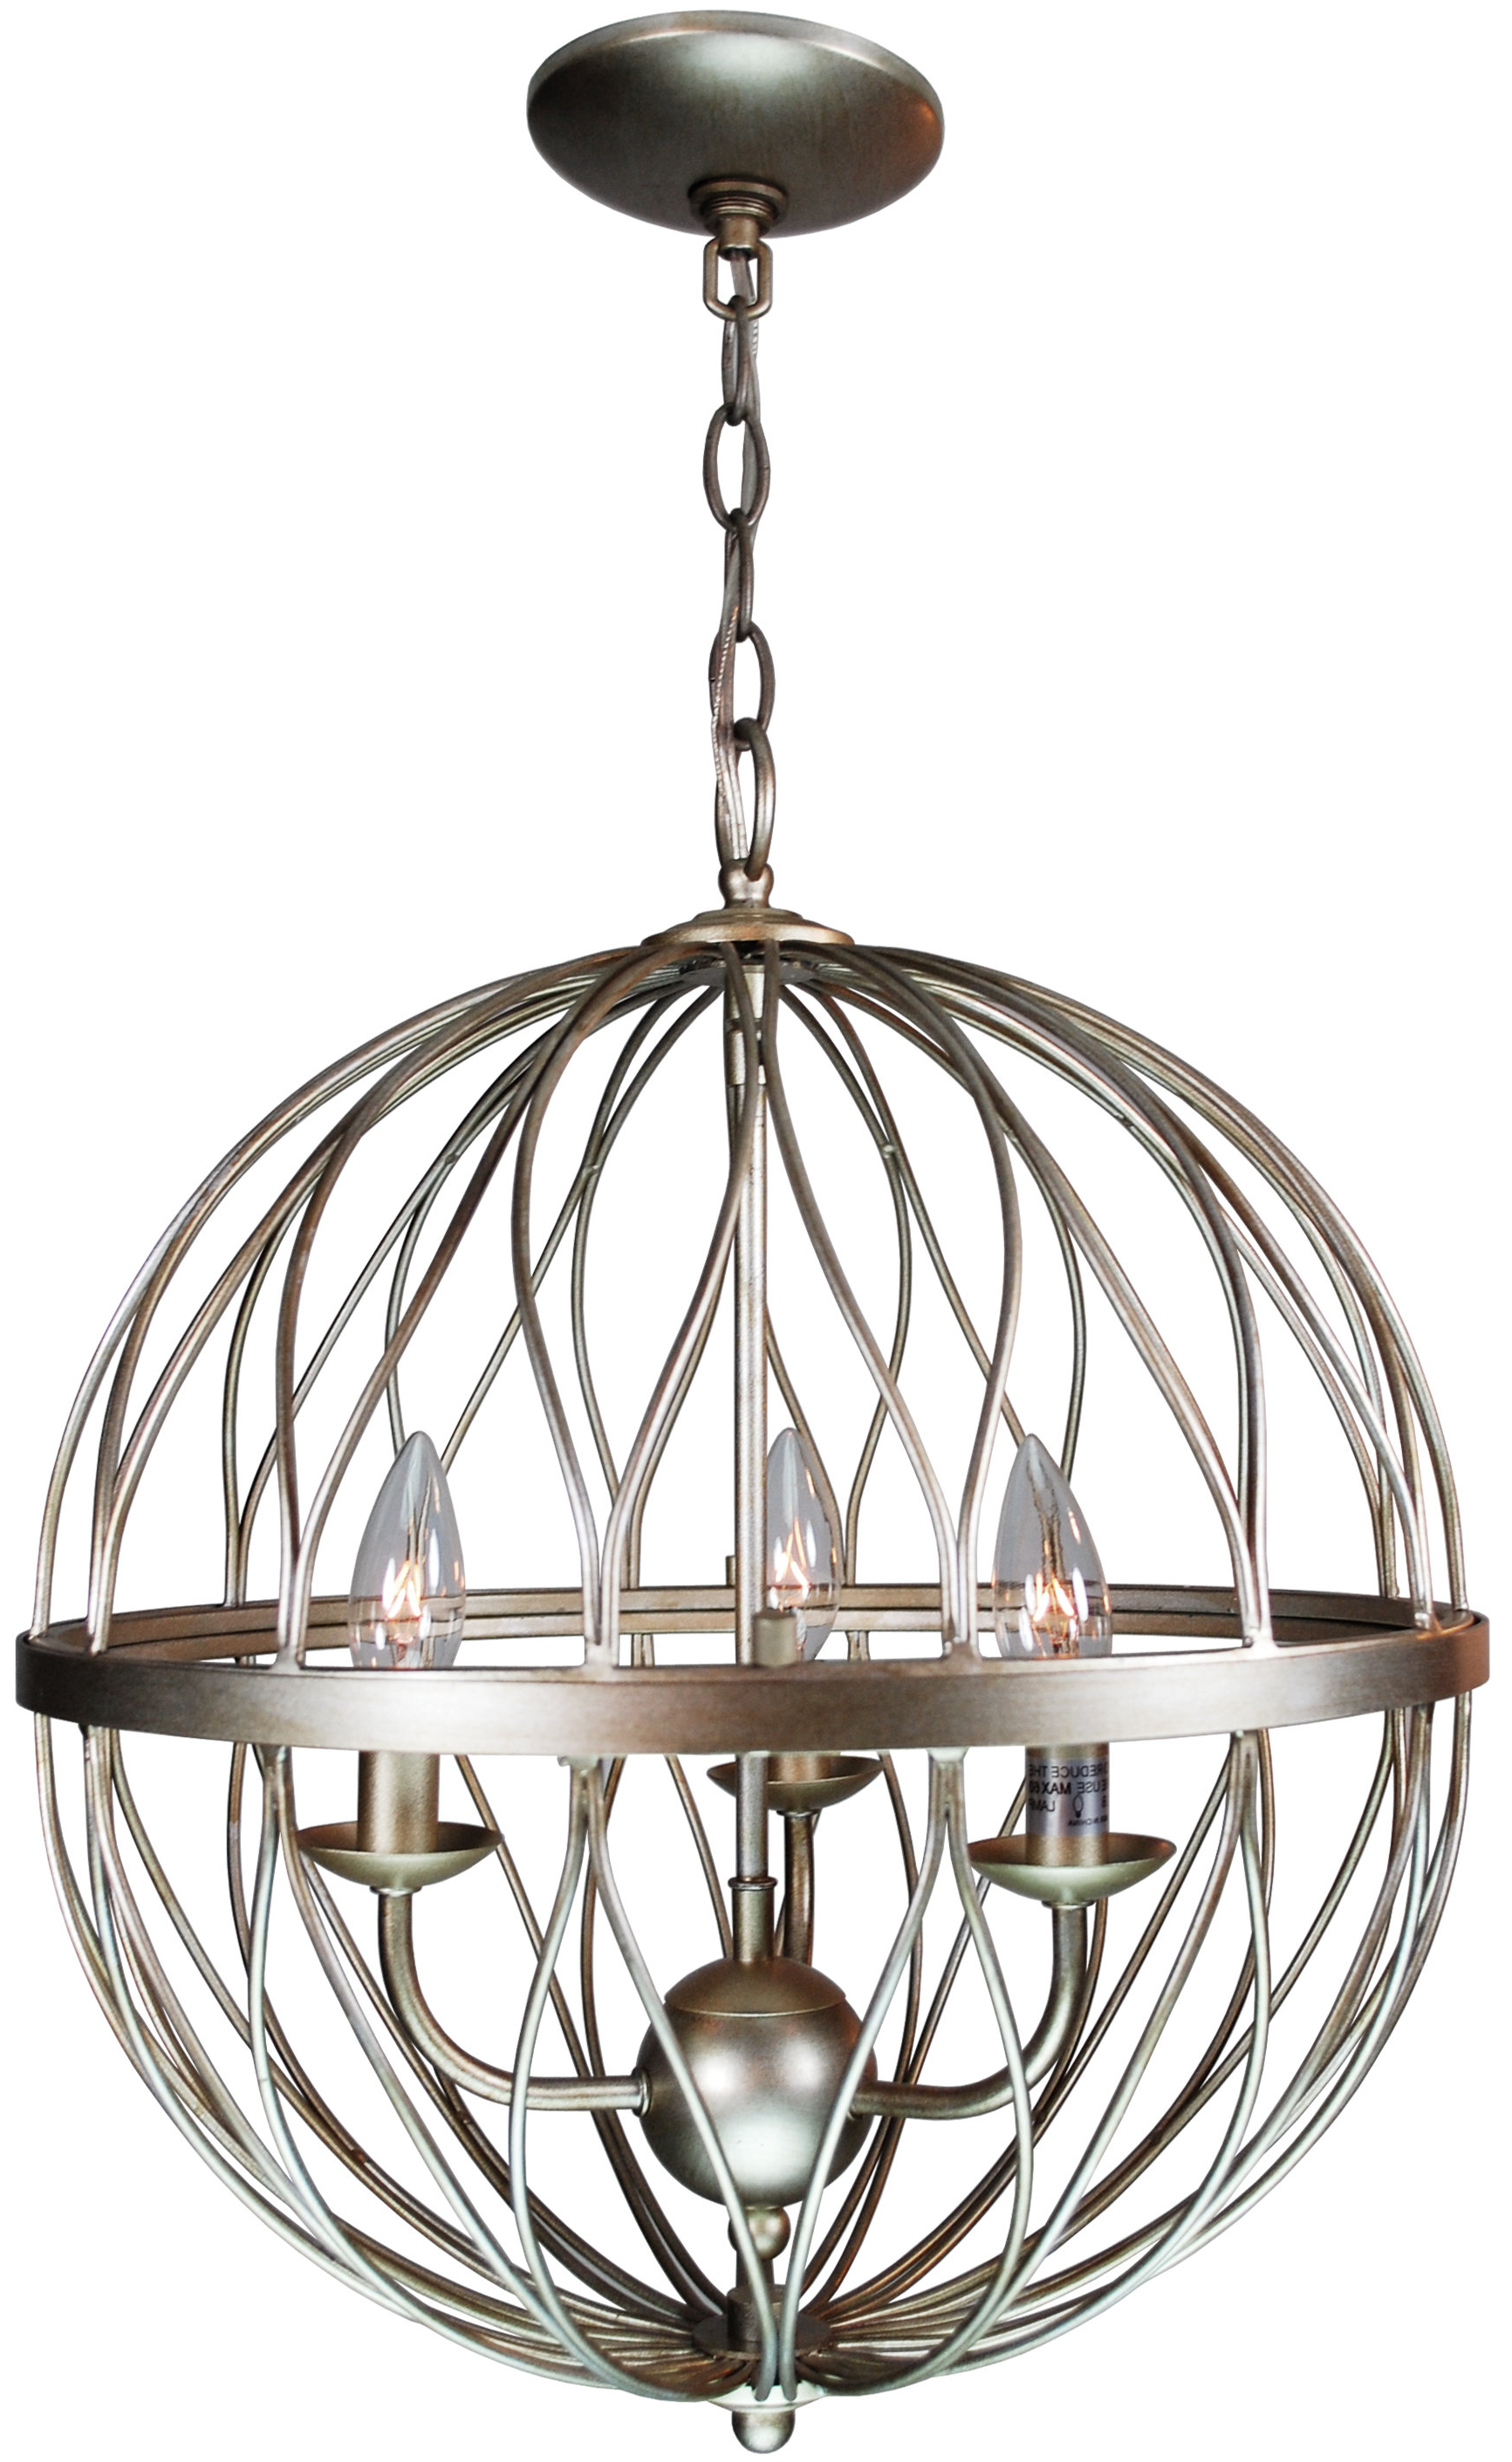 Brittain 3-Light Globe Chandelier with Most Popular Shipststour 3-Light Globe Chandeliers